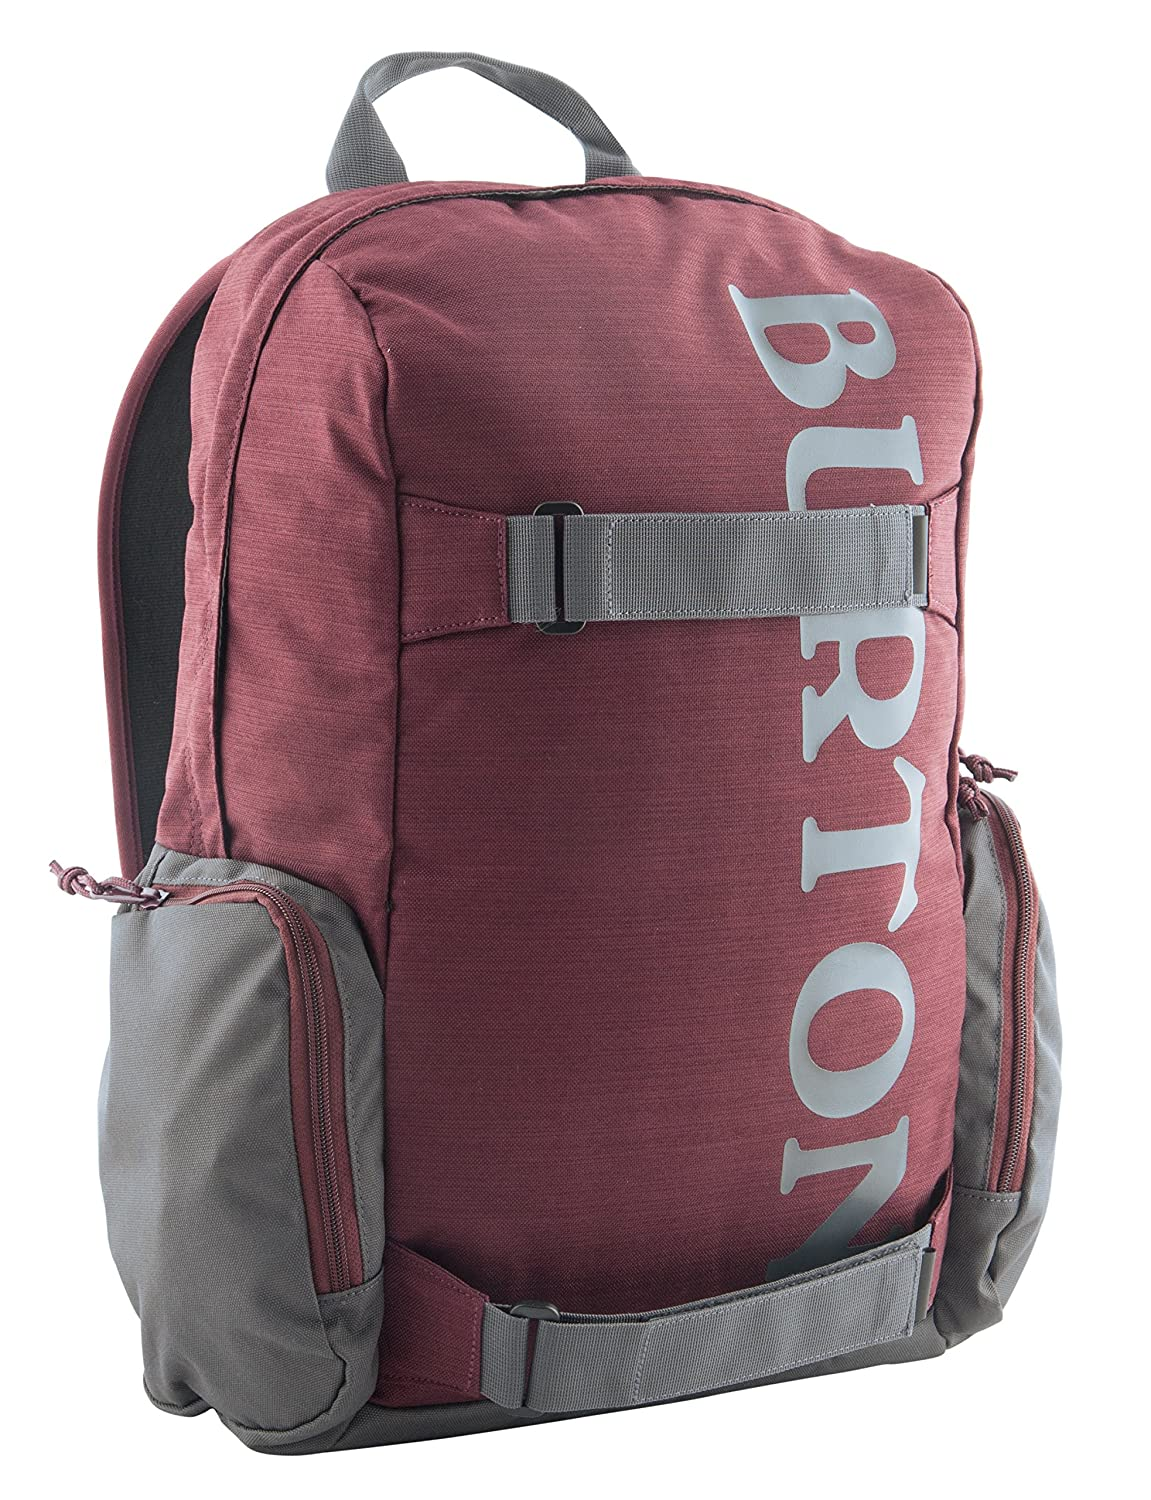 Burton Emphasis Pack Port Royal Slub Sac-á-Dos Mixte Adulte BURA3|#Burton 17382104524